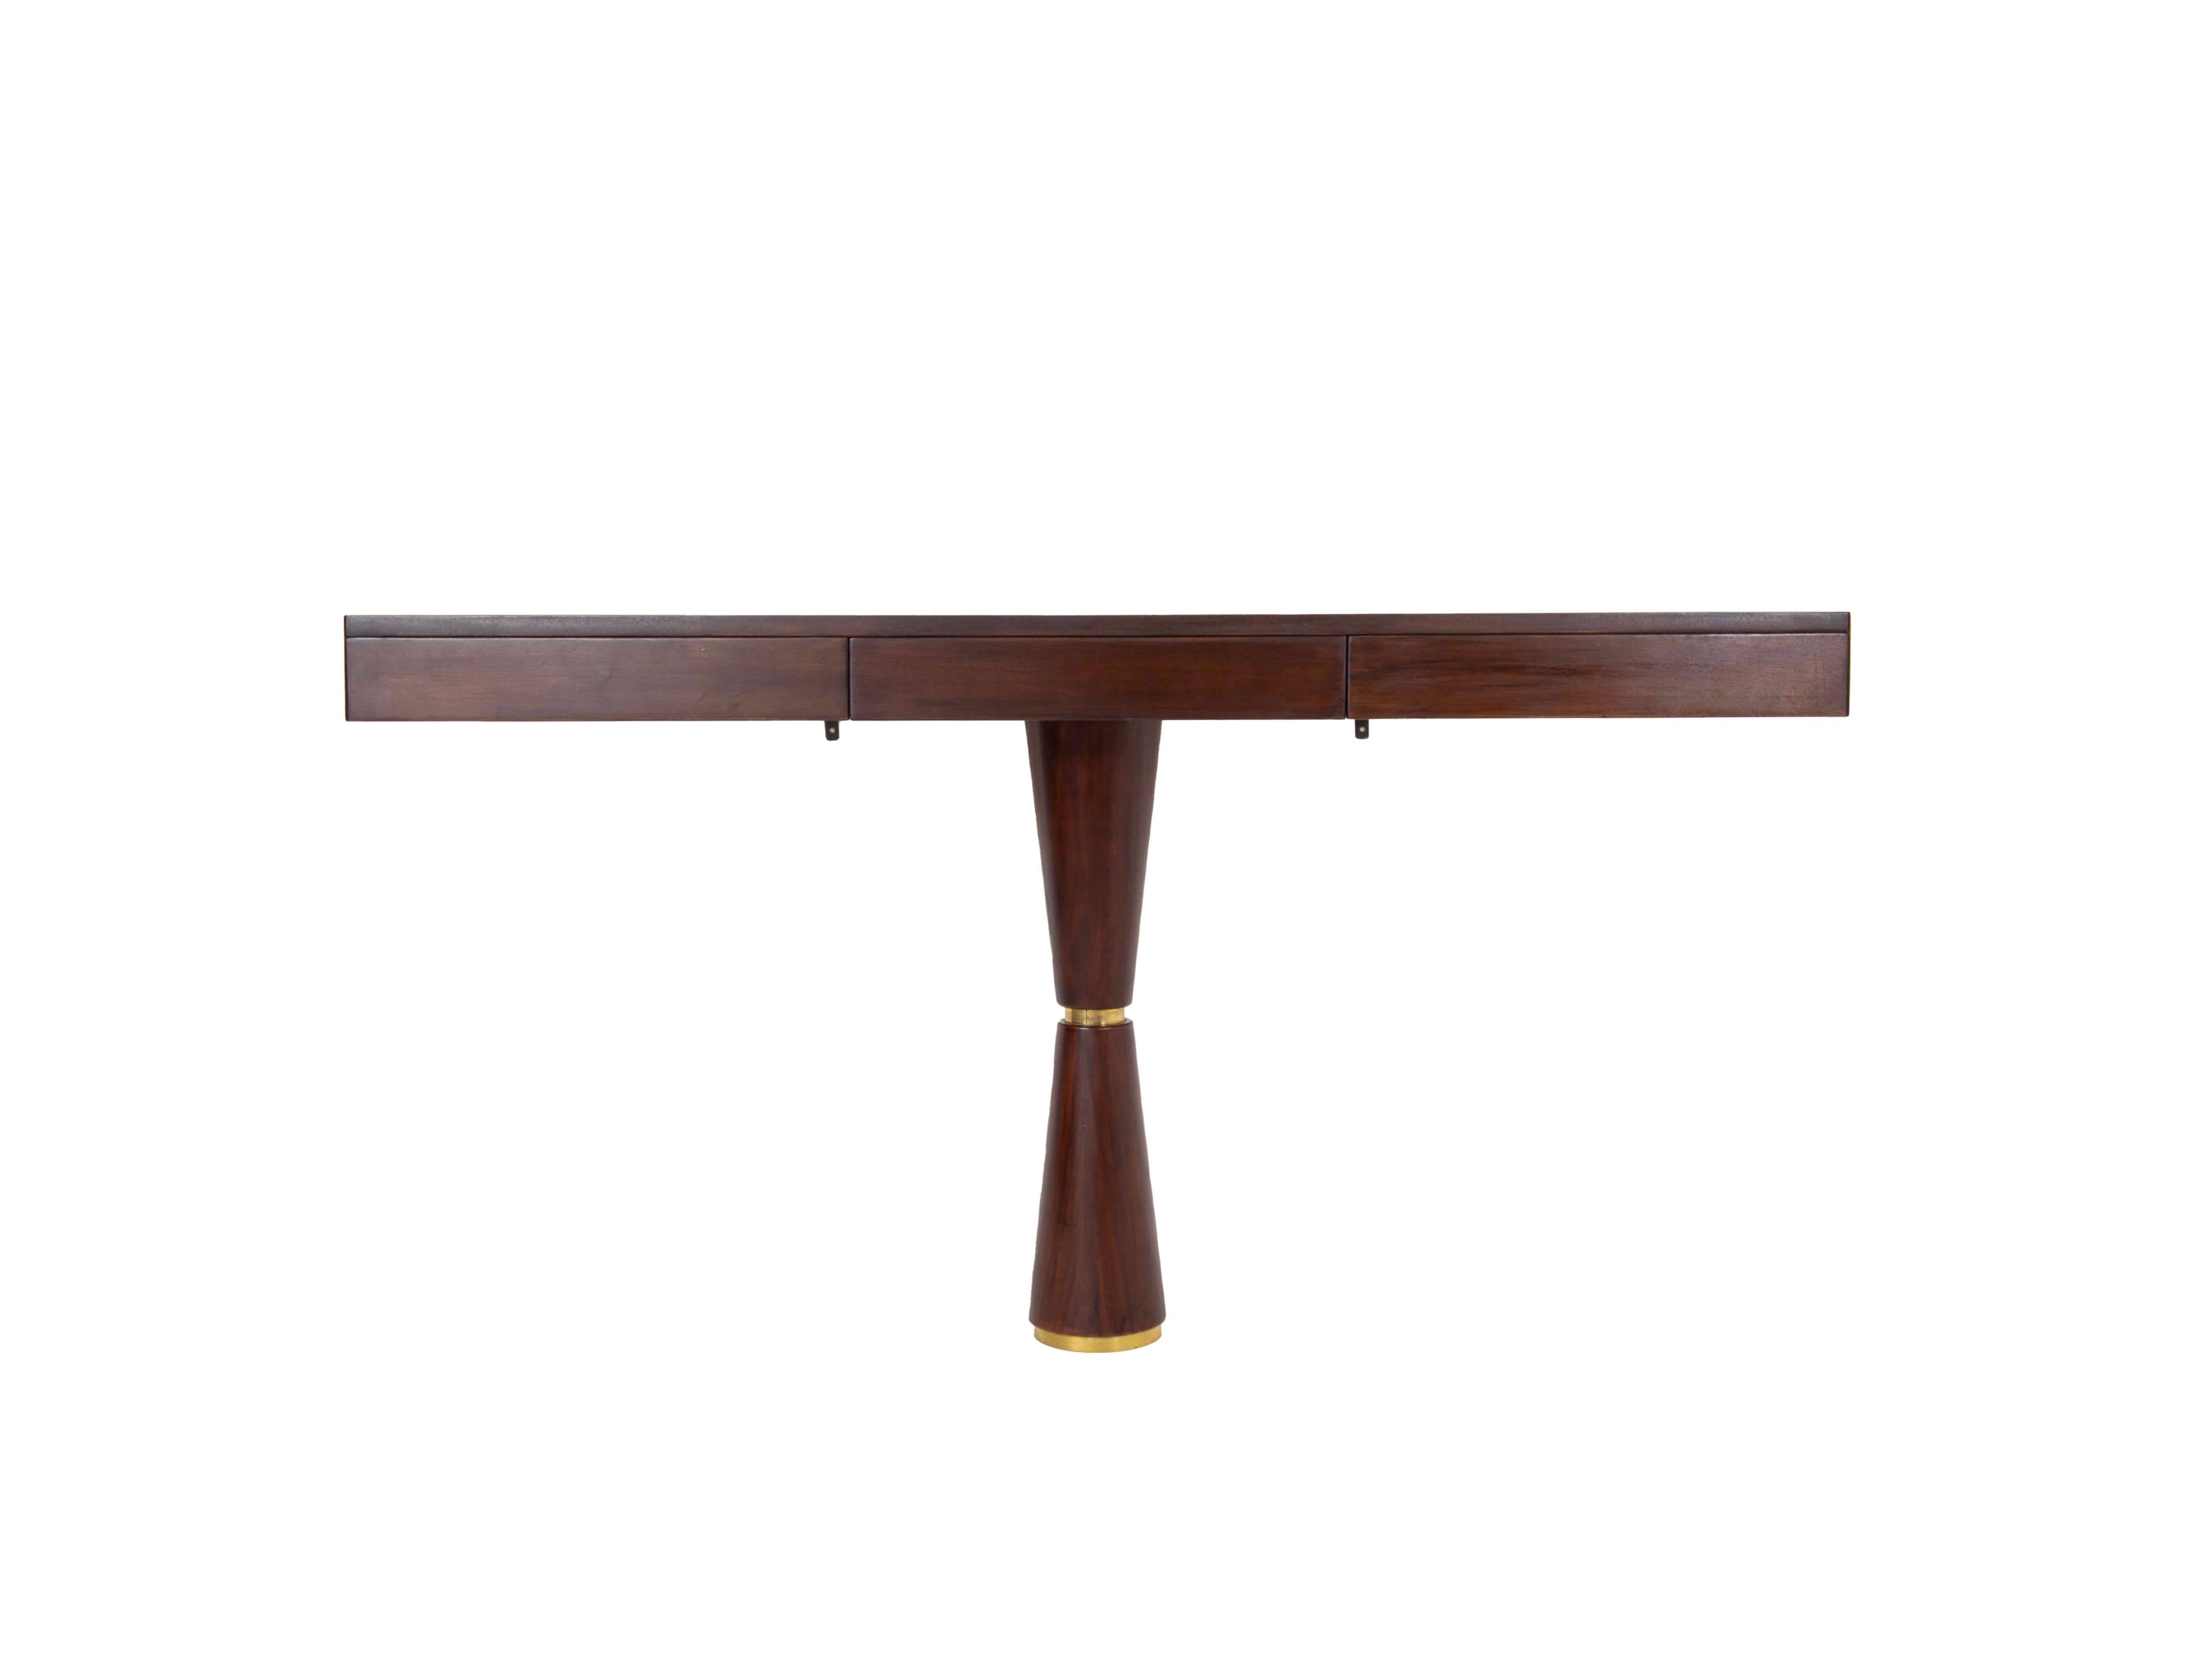 Italian Modern Console in Hard Wood and Brass Attr. to Angelo Mangiarotti, 1960s